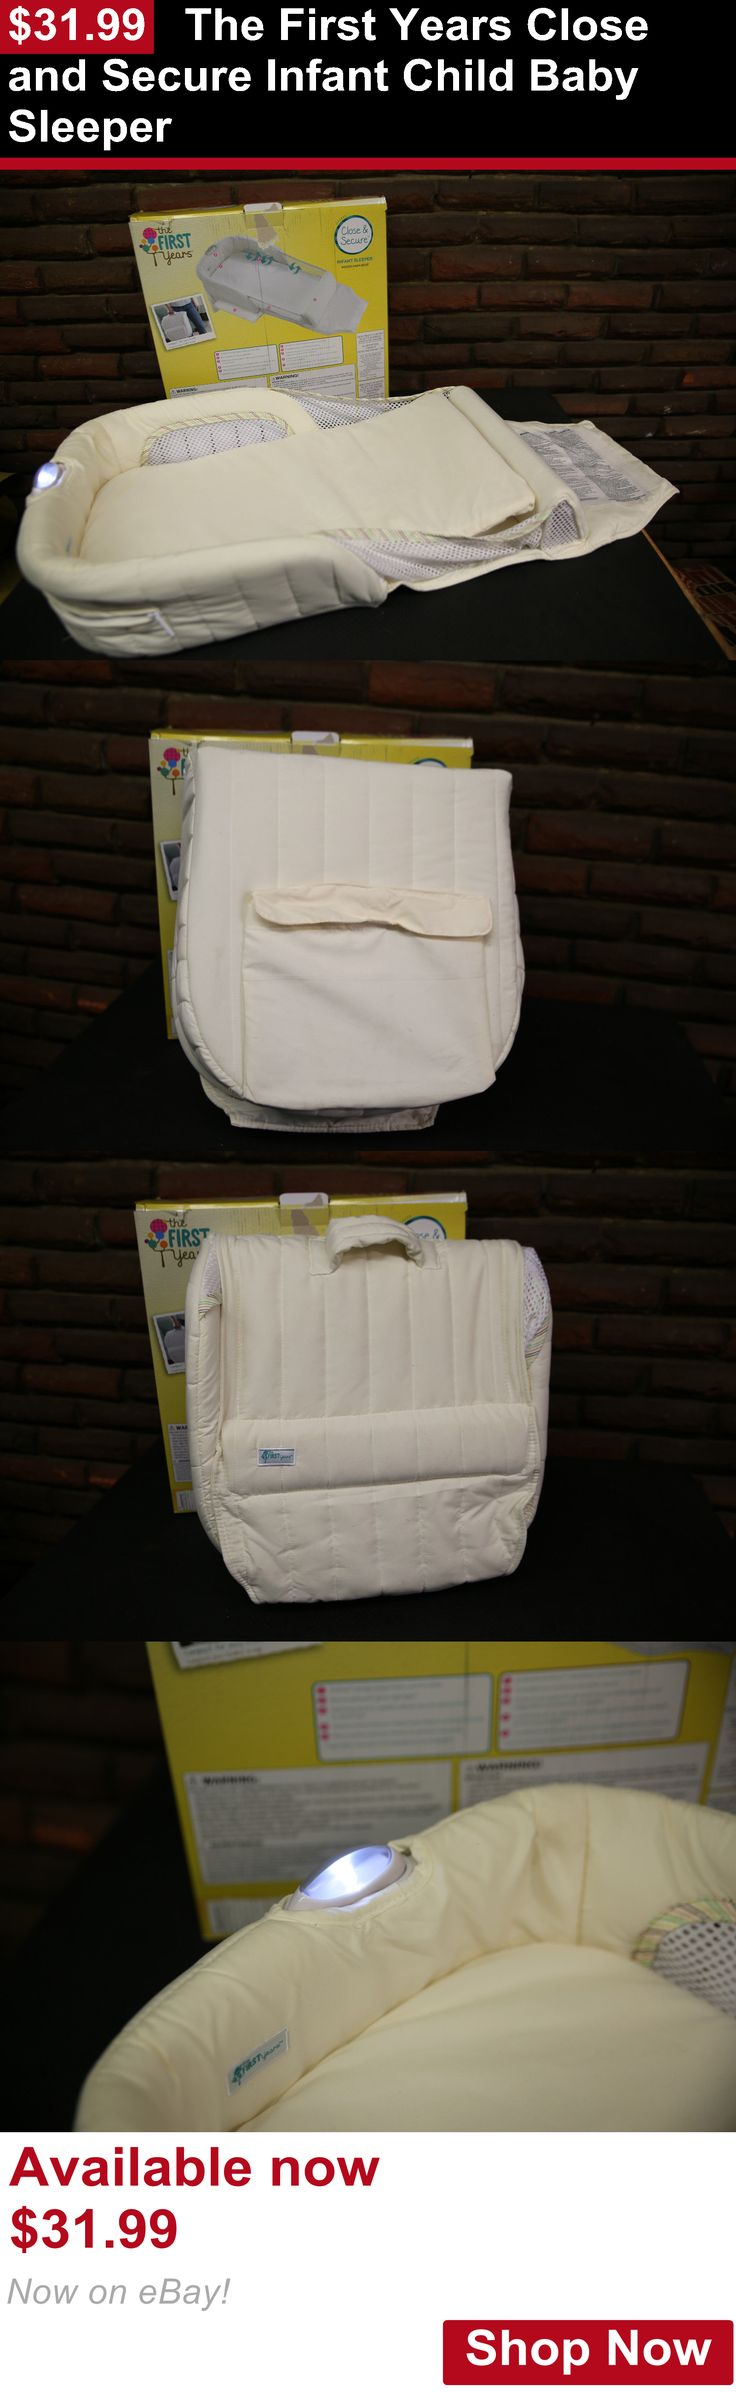 Baby Co-Sleepers: The First Years Close And Secure Infant Child Baby Sleeper  BUY